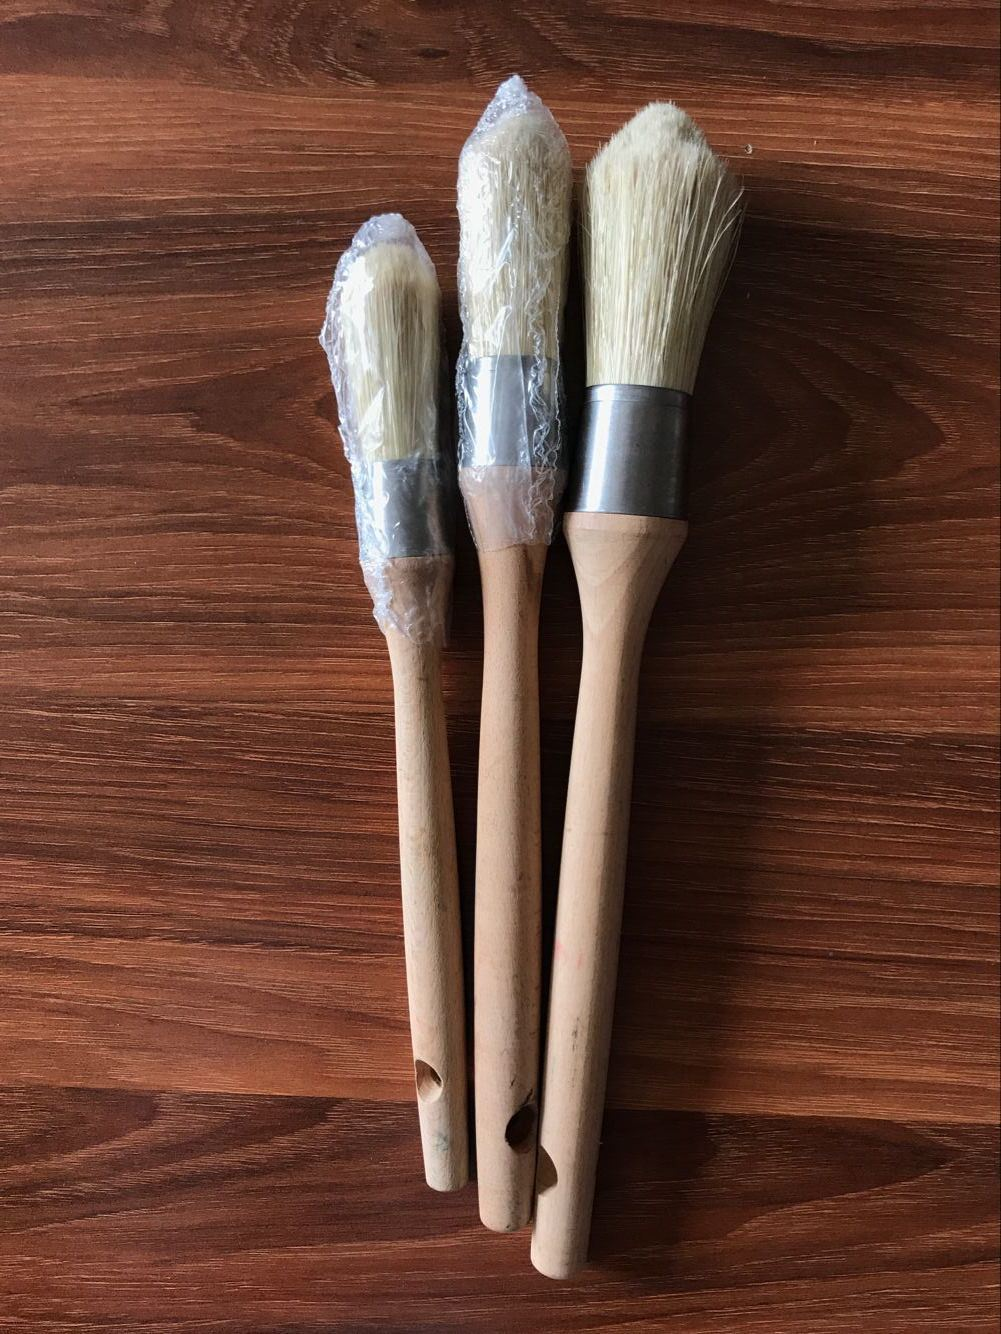 Long Wooden Handle Round Brush White Bristle Material